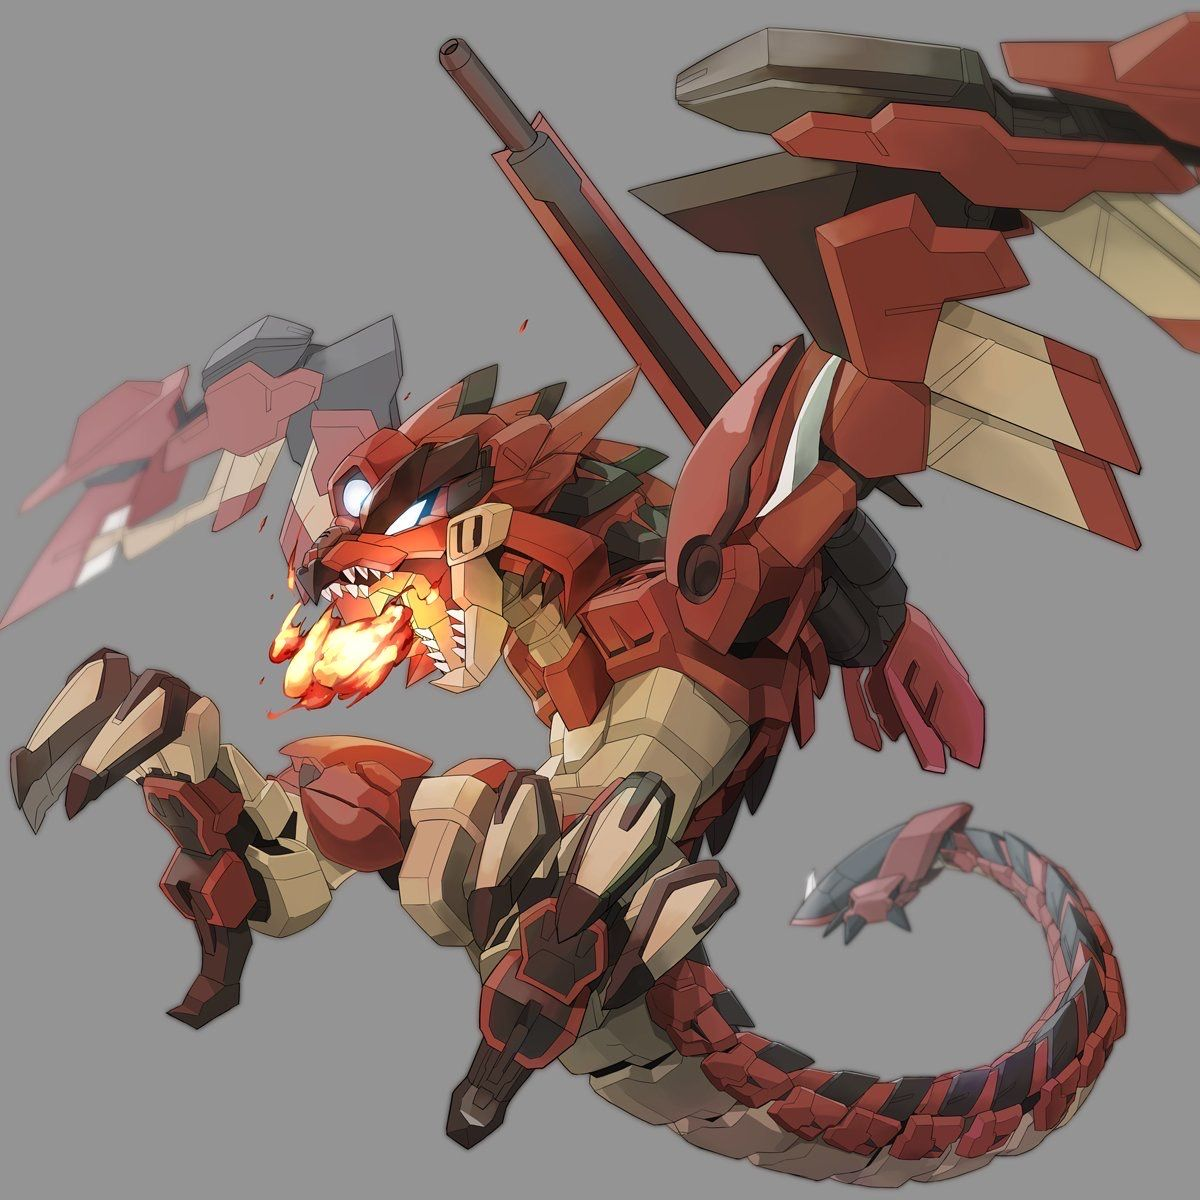 pin by suneater d9 on mecha aa ron monster hunter memes monster hunter art monster hunter series